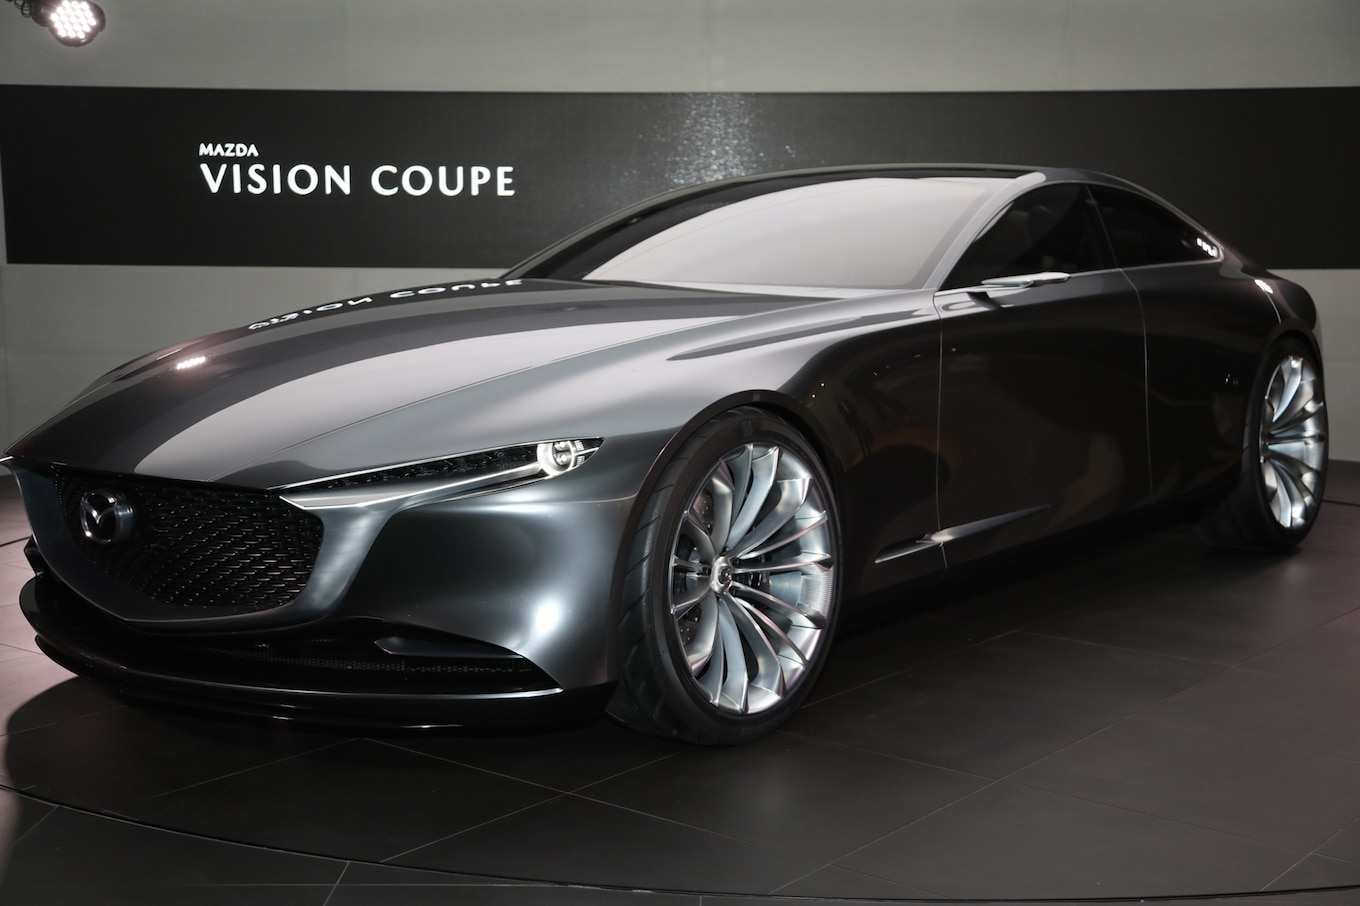 44 Great The 2019 Mazda Vision Coupe Price Concept Spesification with The 2019 Mazda Vision Coupe Price Concept